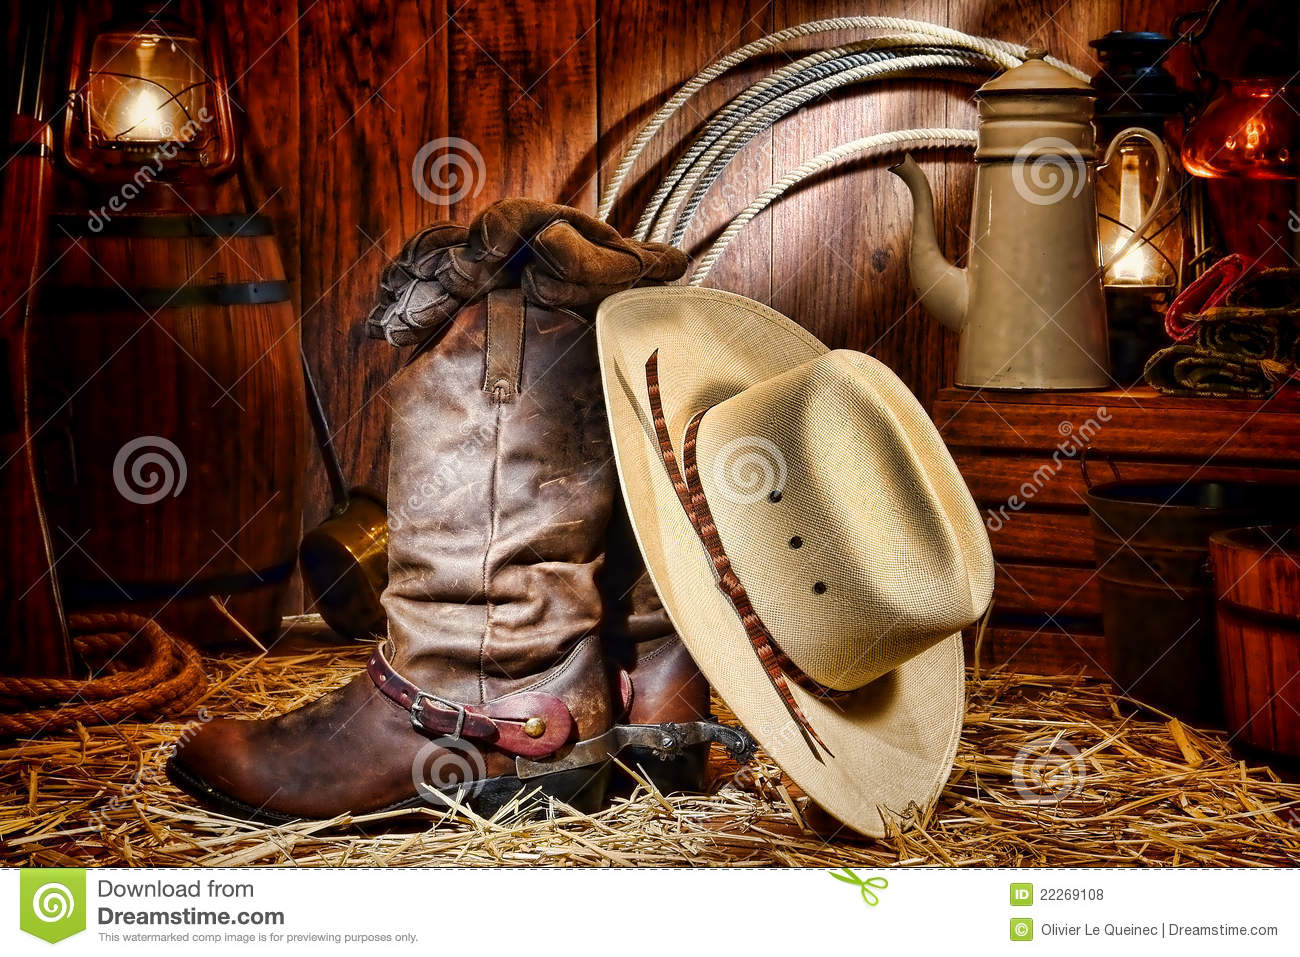 Cute Christmas Kitten Wallpaper American West Rodeo Cowboy Hat And Boots In A Barn Royalty